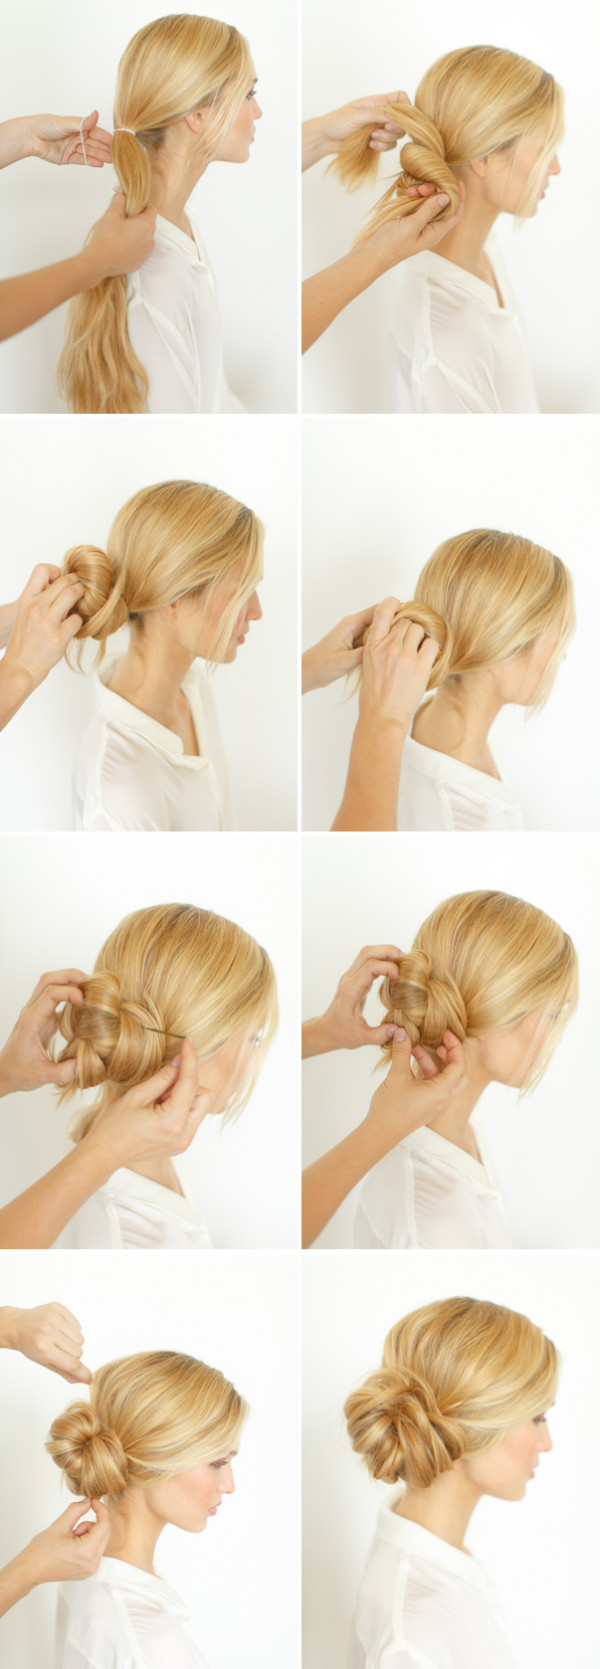 Best ideas about DIY Wedding Hair . Save or Pin DIY Knotted Bun Wedding Hairstyle Now.